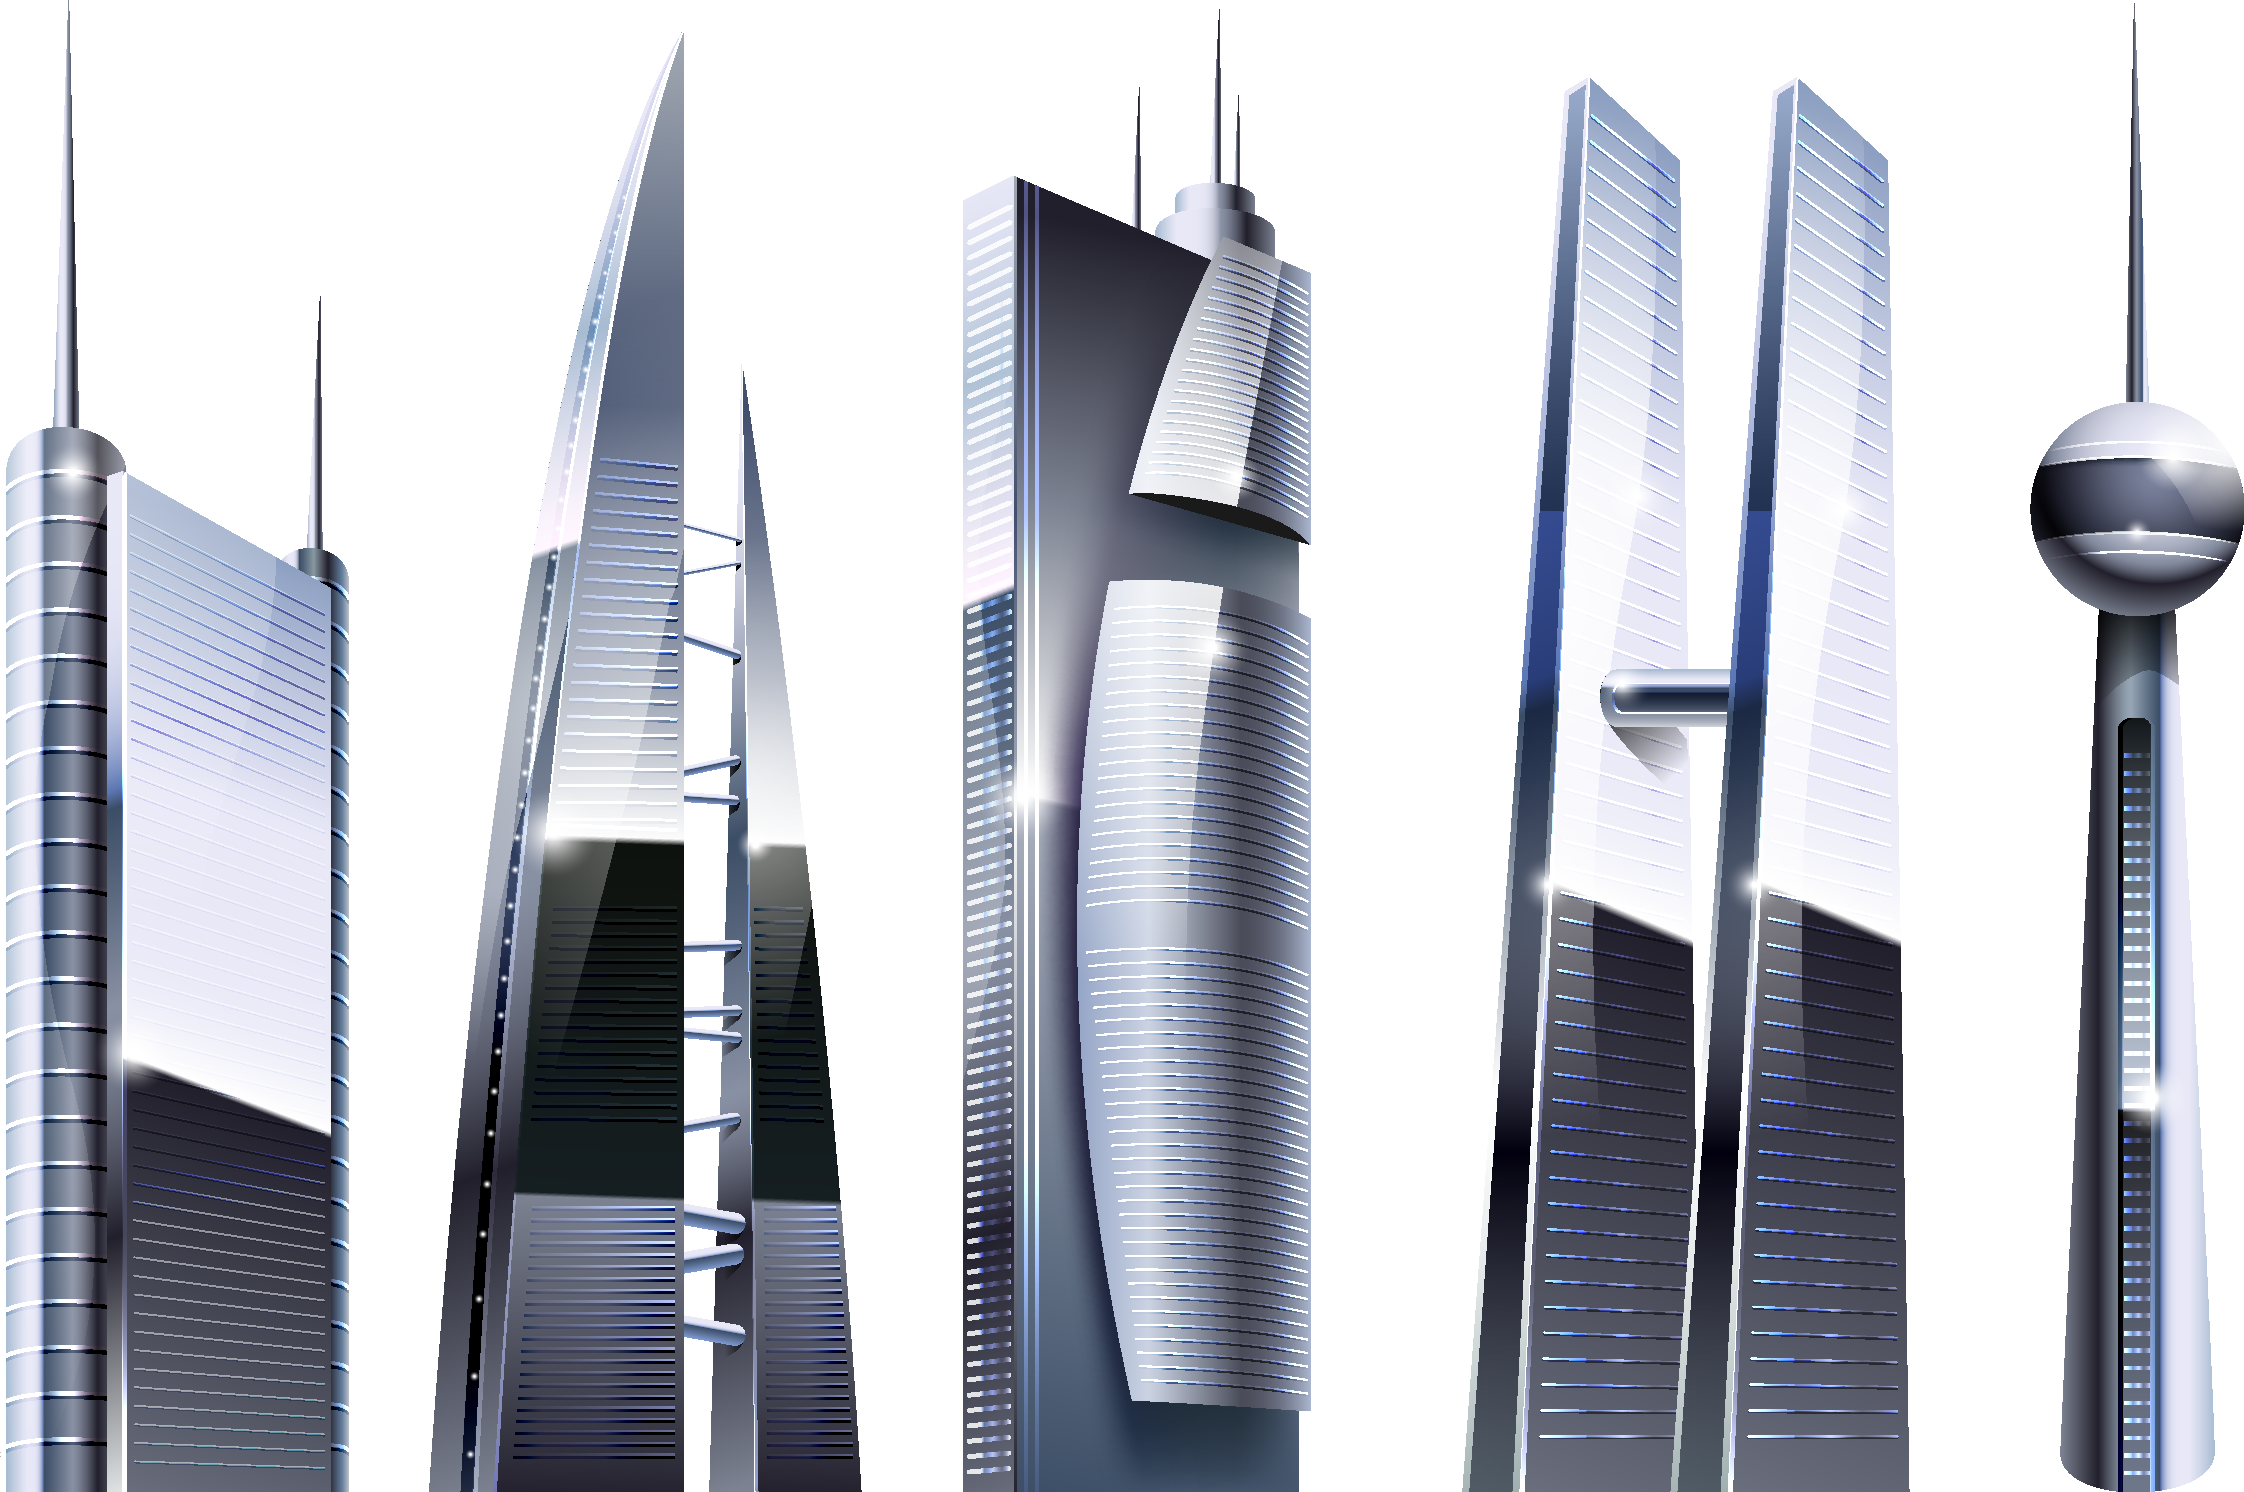 Interesting Architecture - Landmark Buildings PNG Image